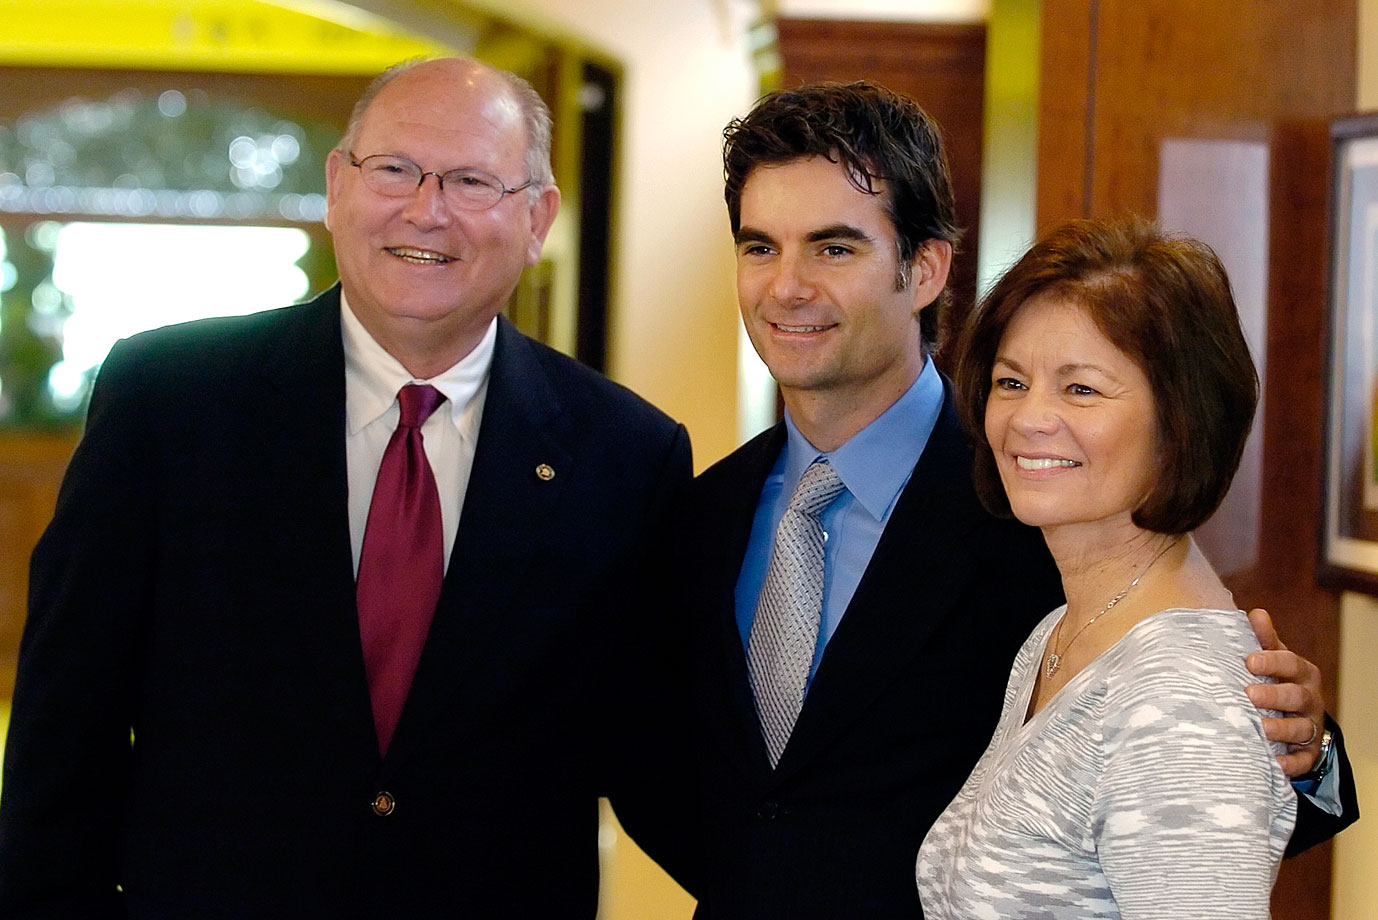 Jeff Gordon poses with his parents, John and Carol Bickford, during the grand opening ceremony for the Jeff Gordon Children's Hospital in Concord, N.C.